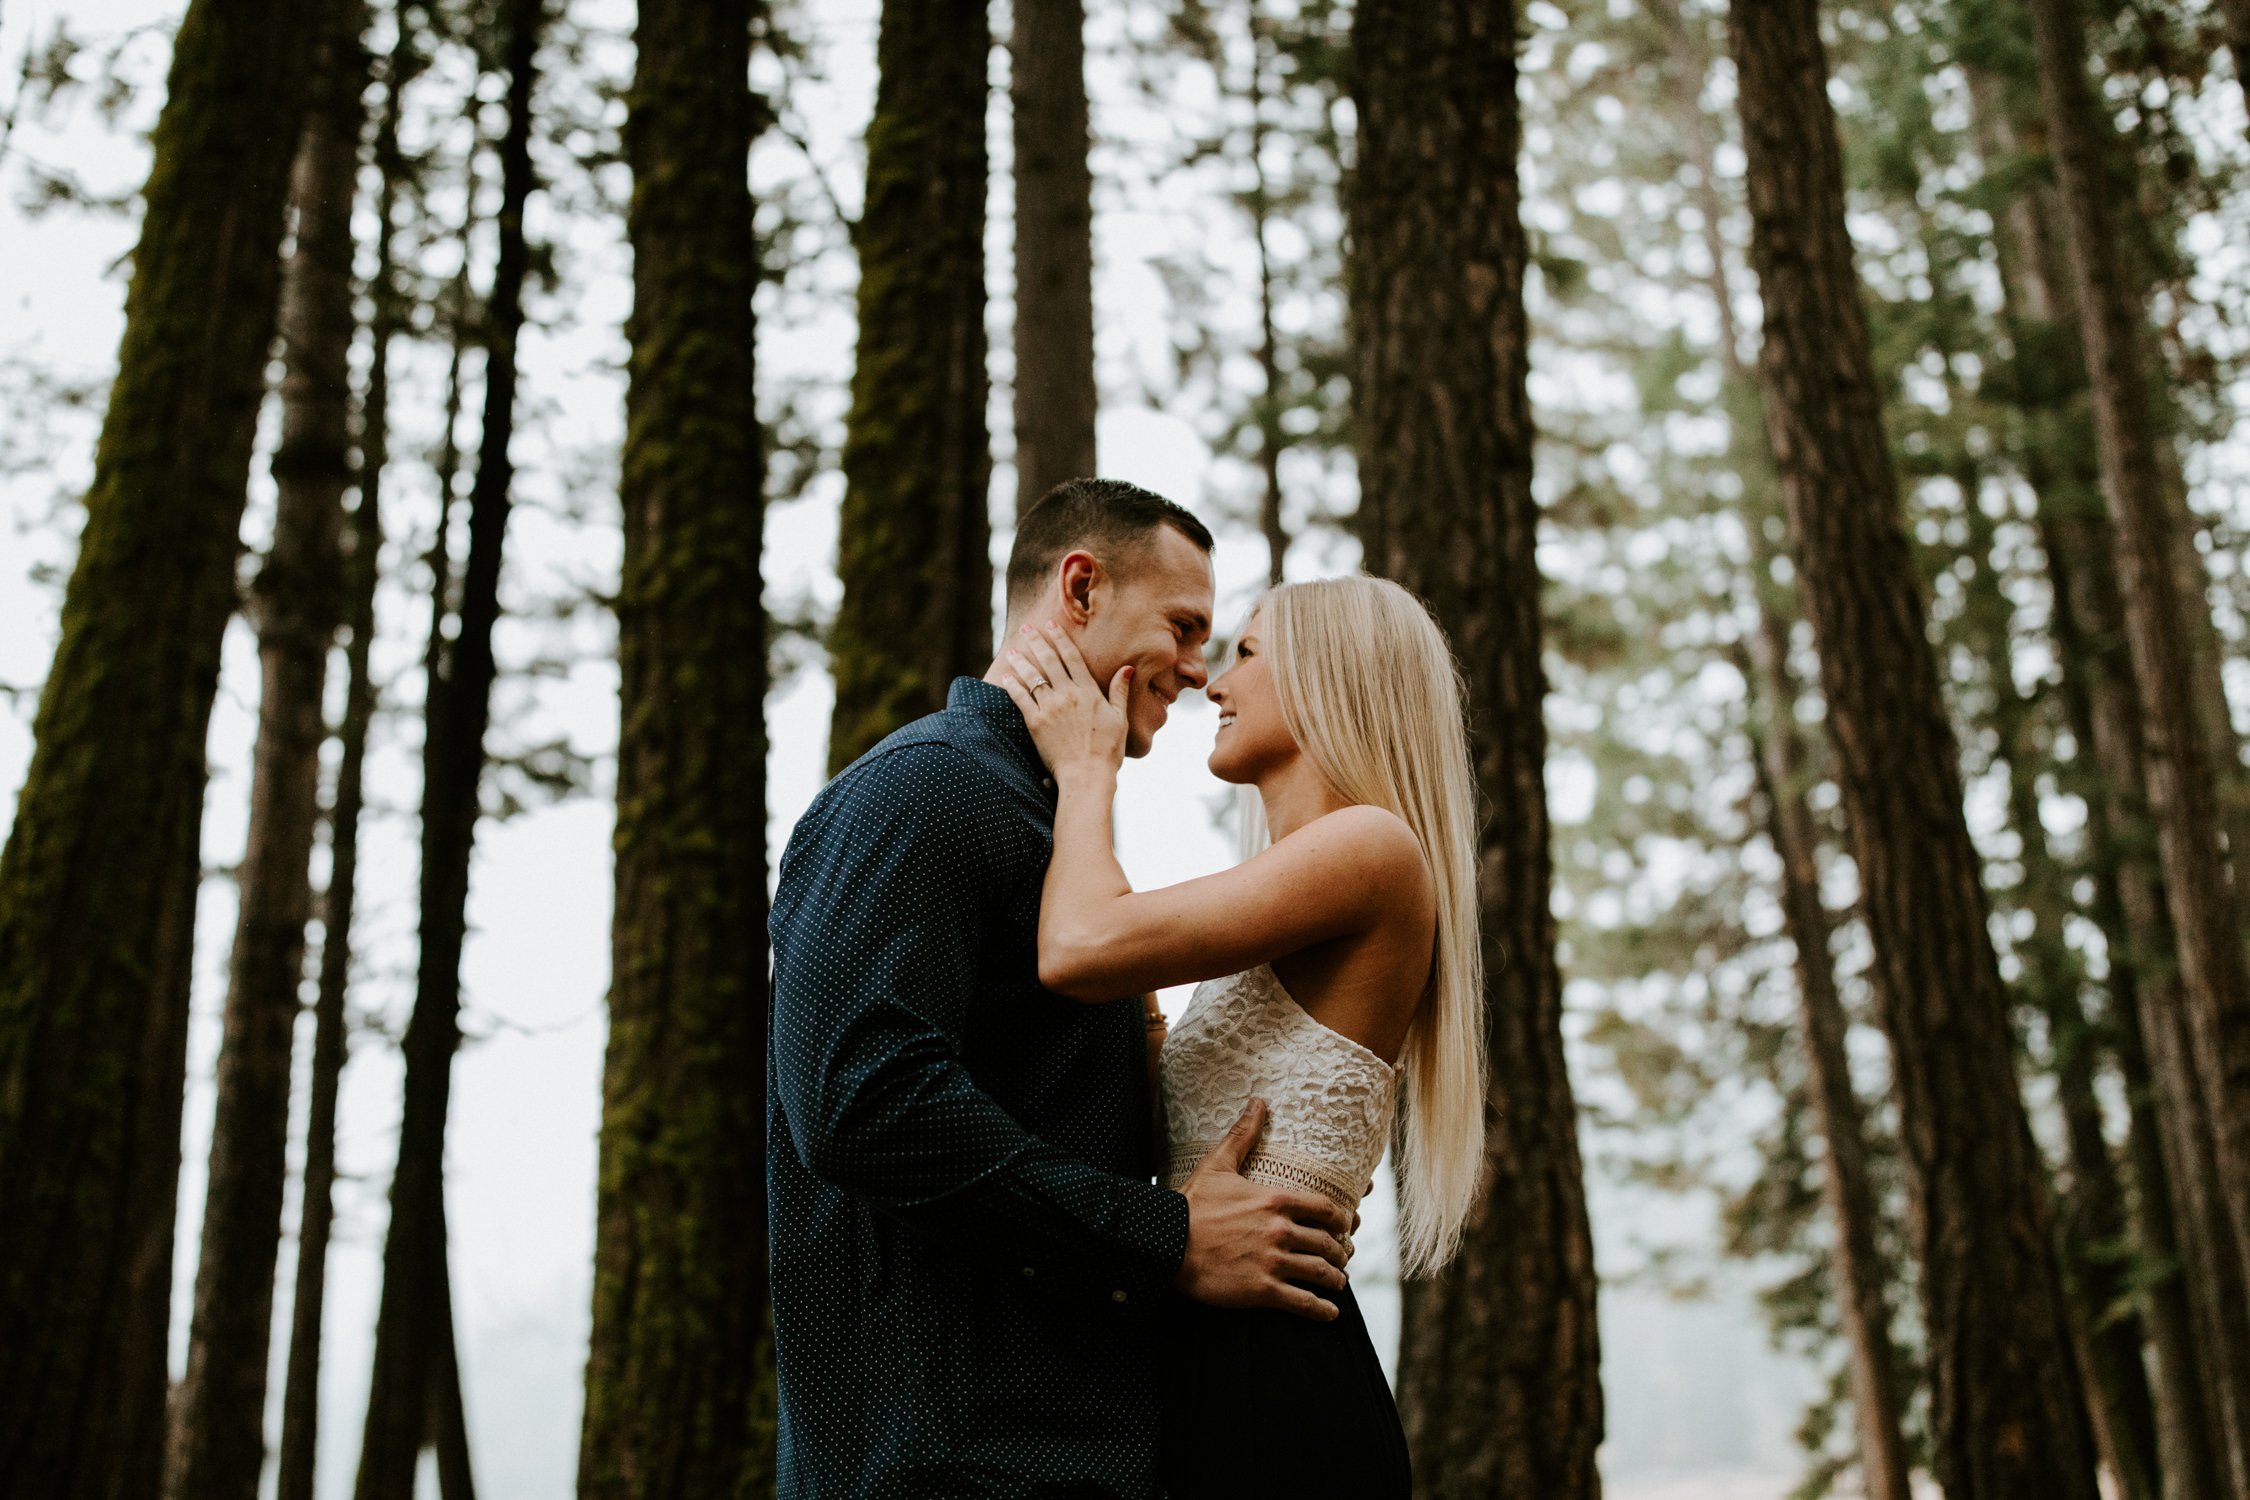 couple-intimate-engagement-session-northern-california-3.jpg